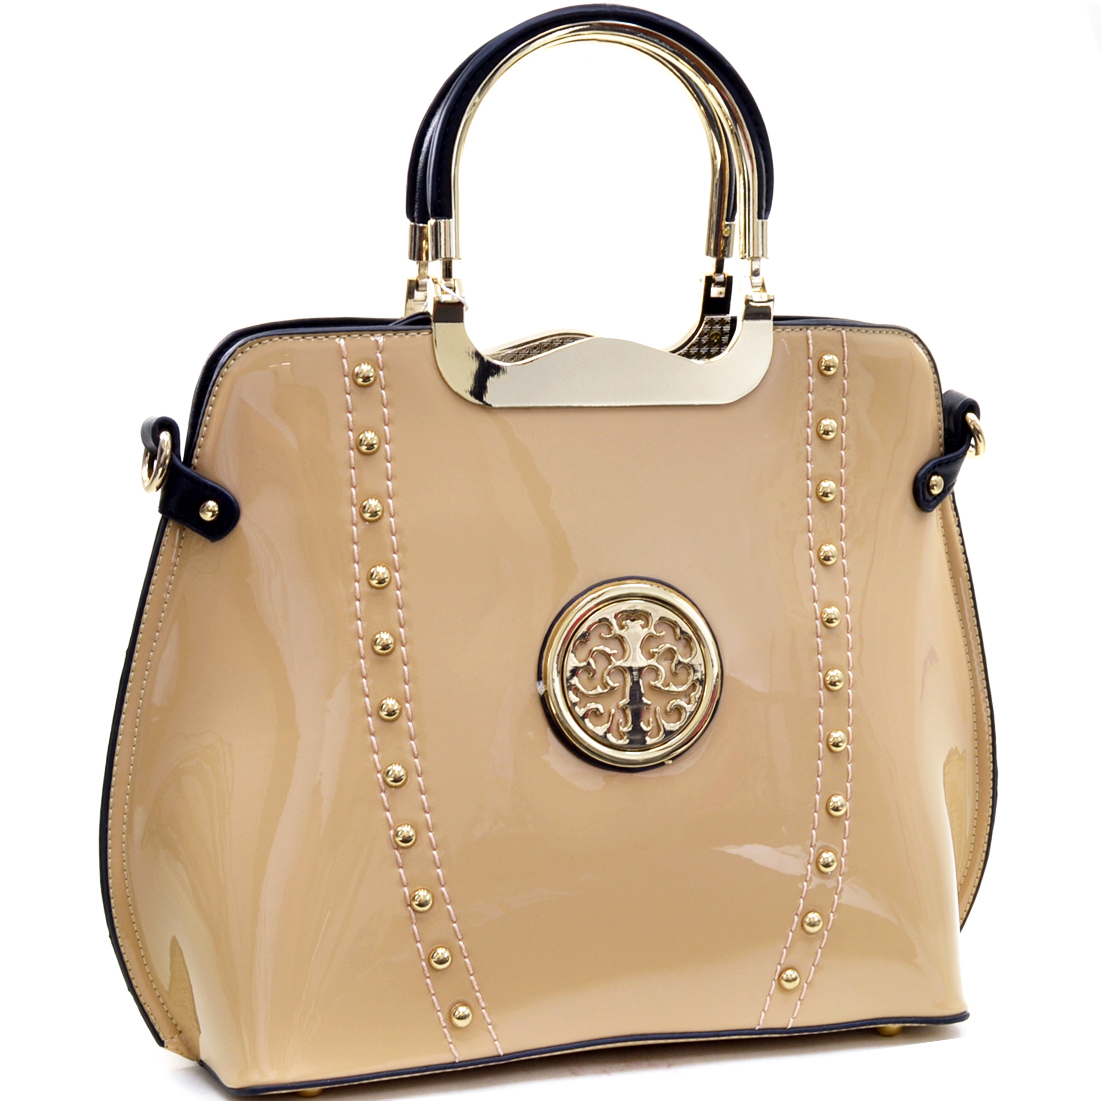 Gold Tone Studded Patent Metal Handle Flat Bottom Emblem Bag